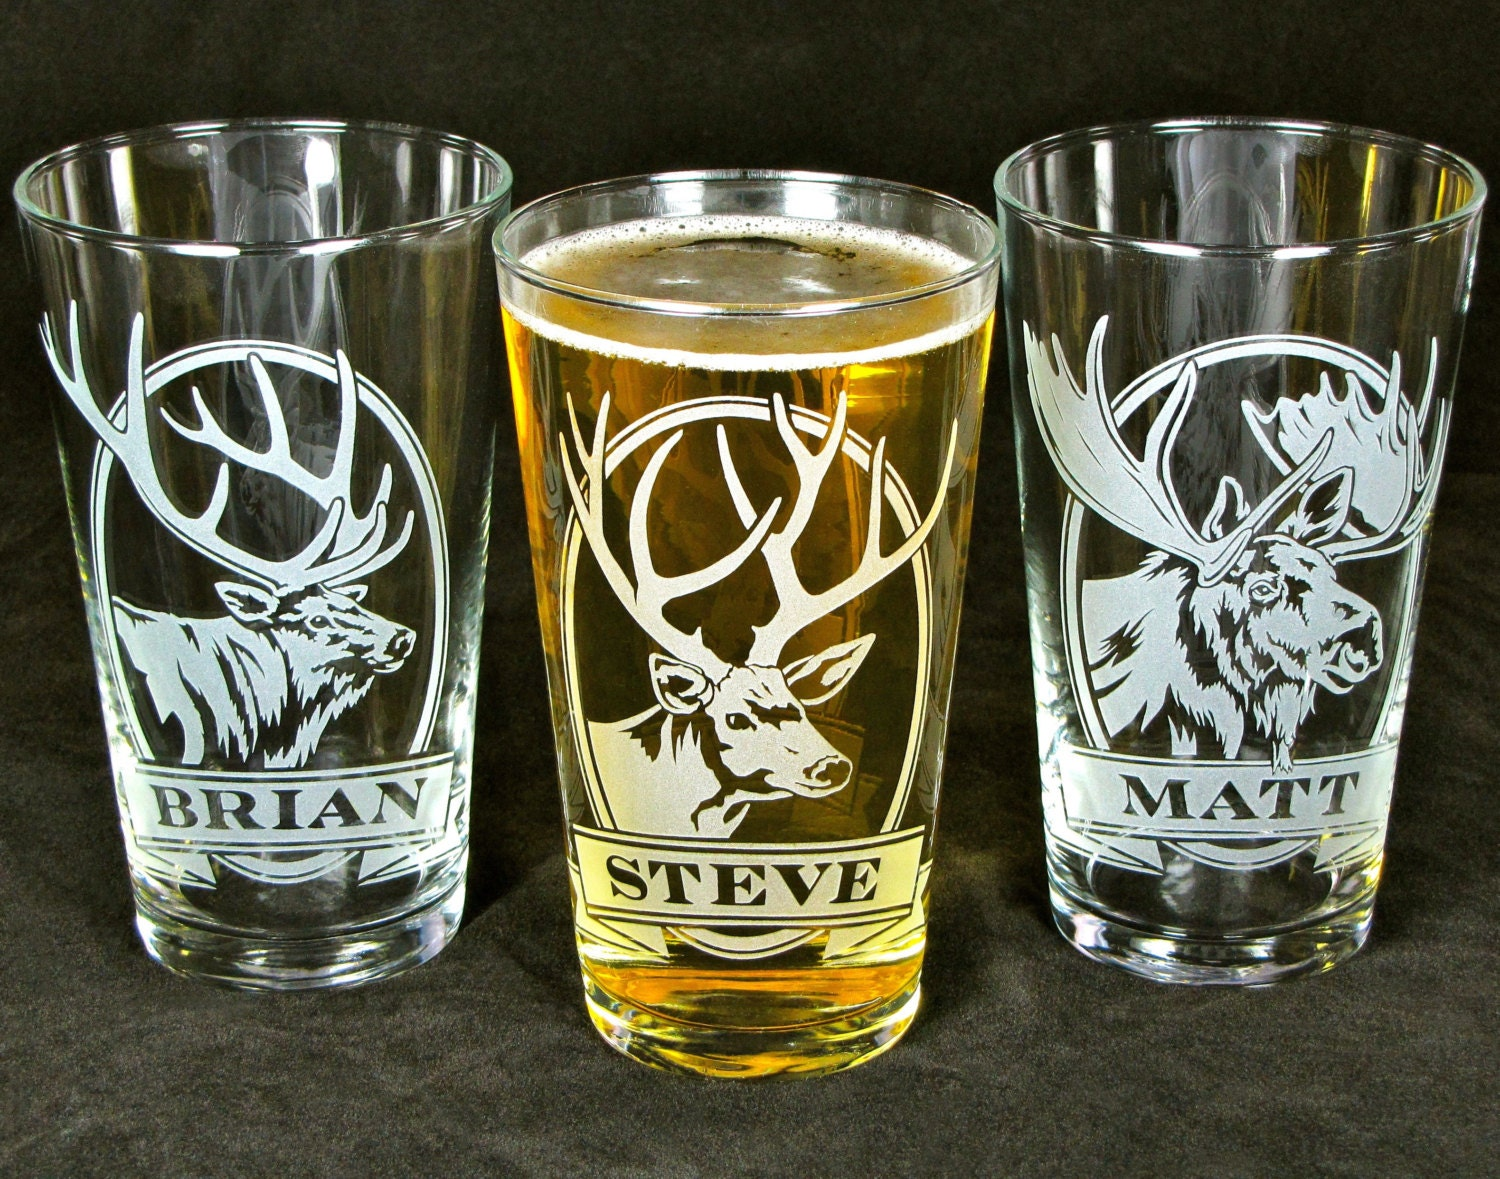 Wedding Gifts Engraved Glasses : Personalized Pint Glasses Rustic Chic Wedding Gifts for